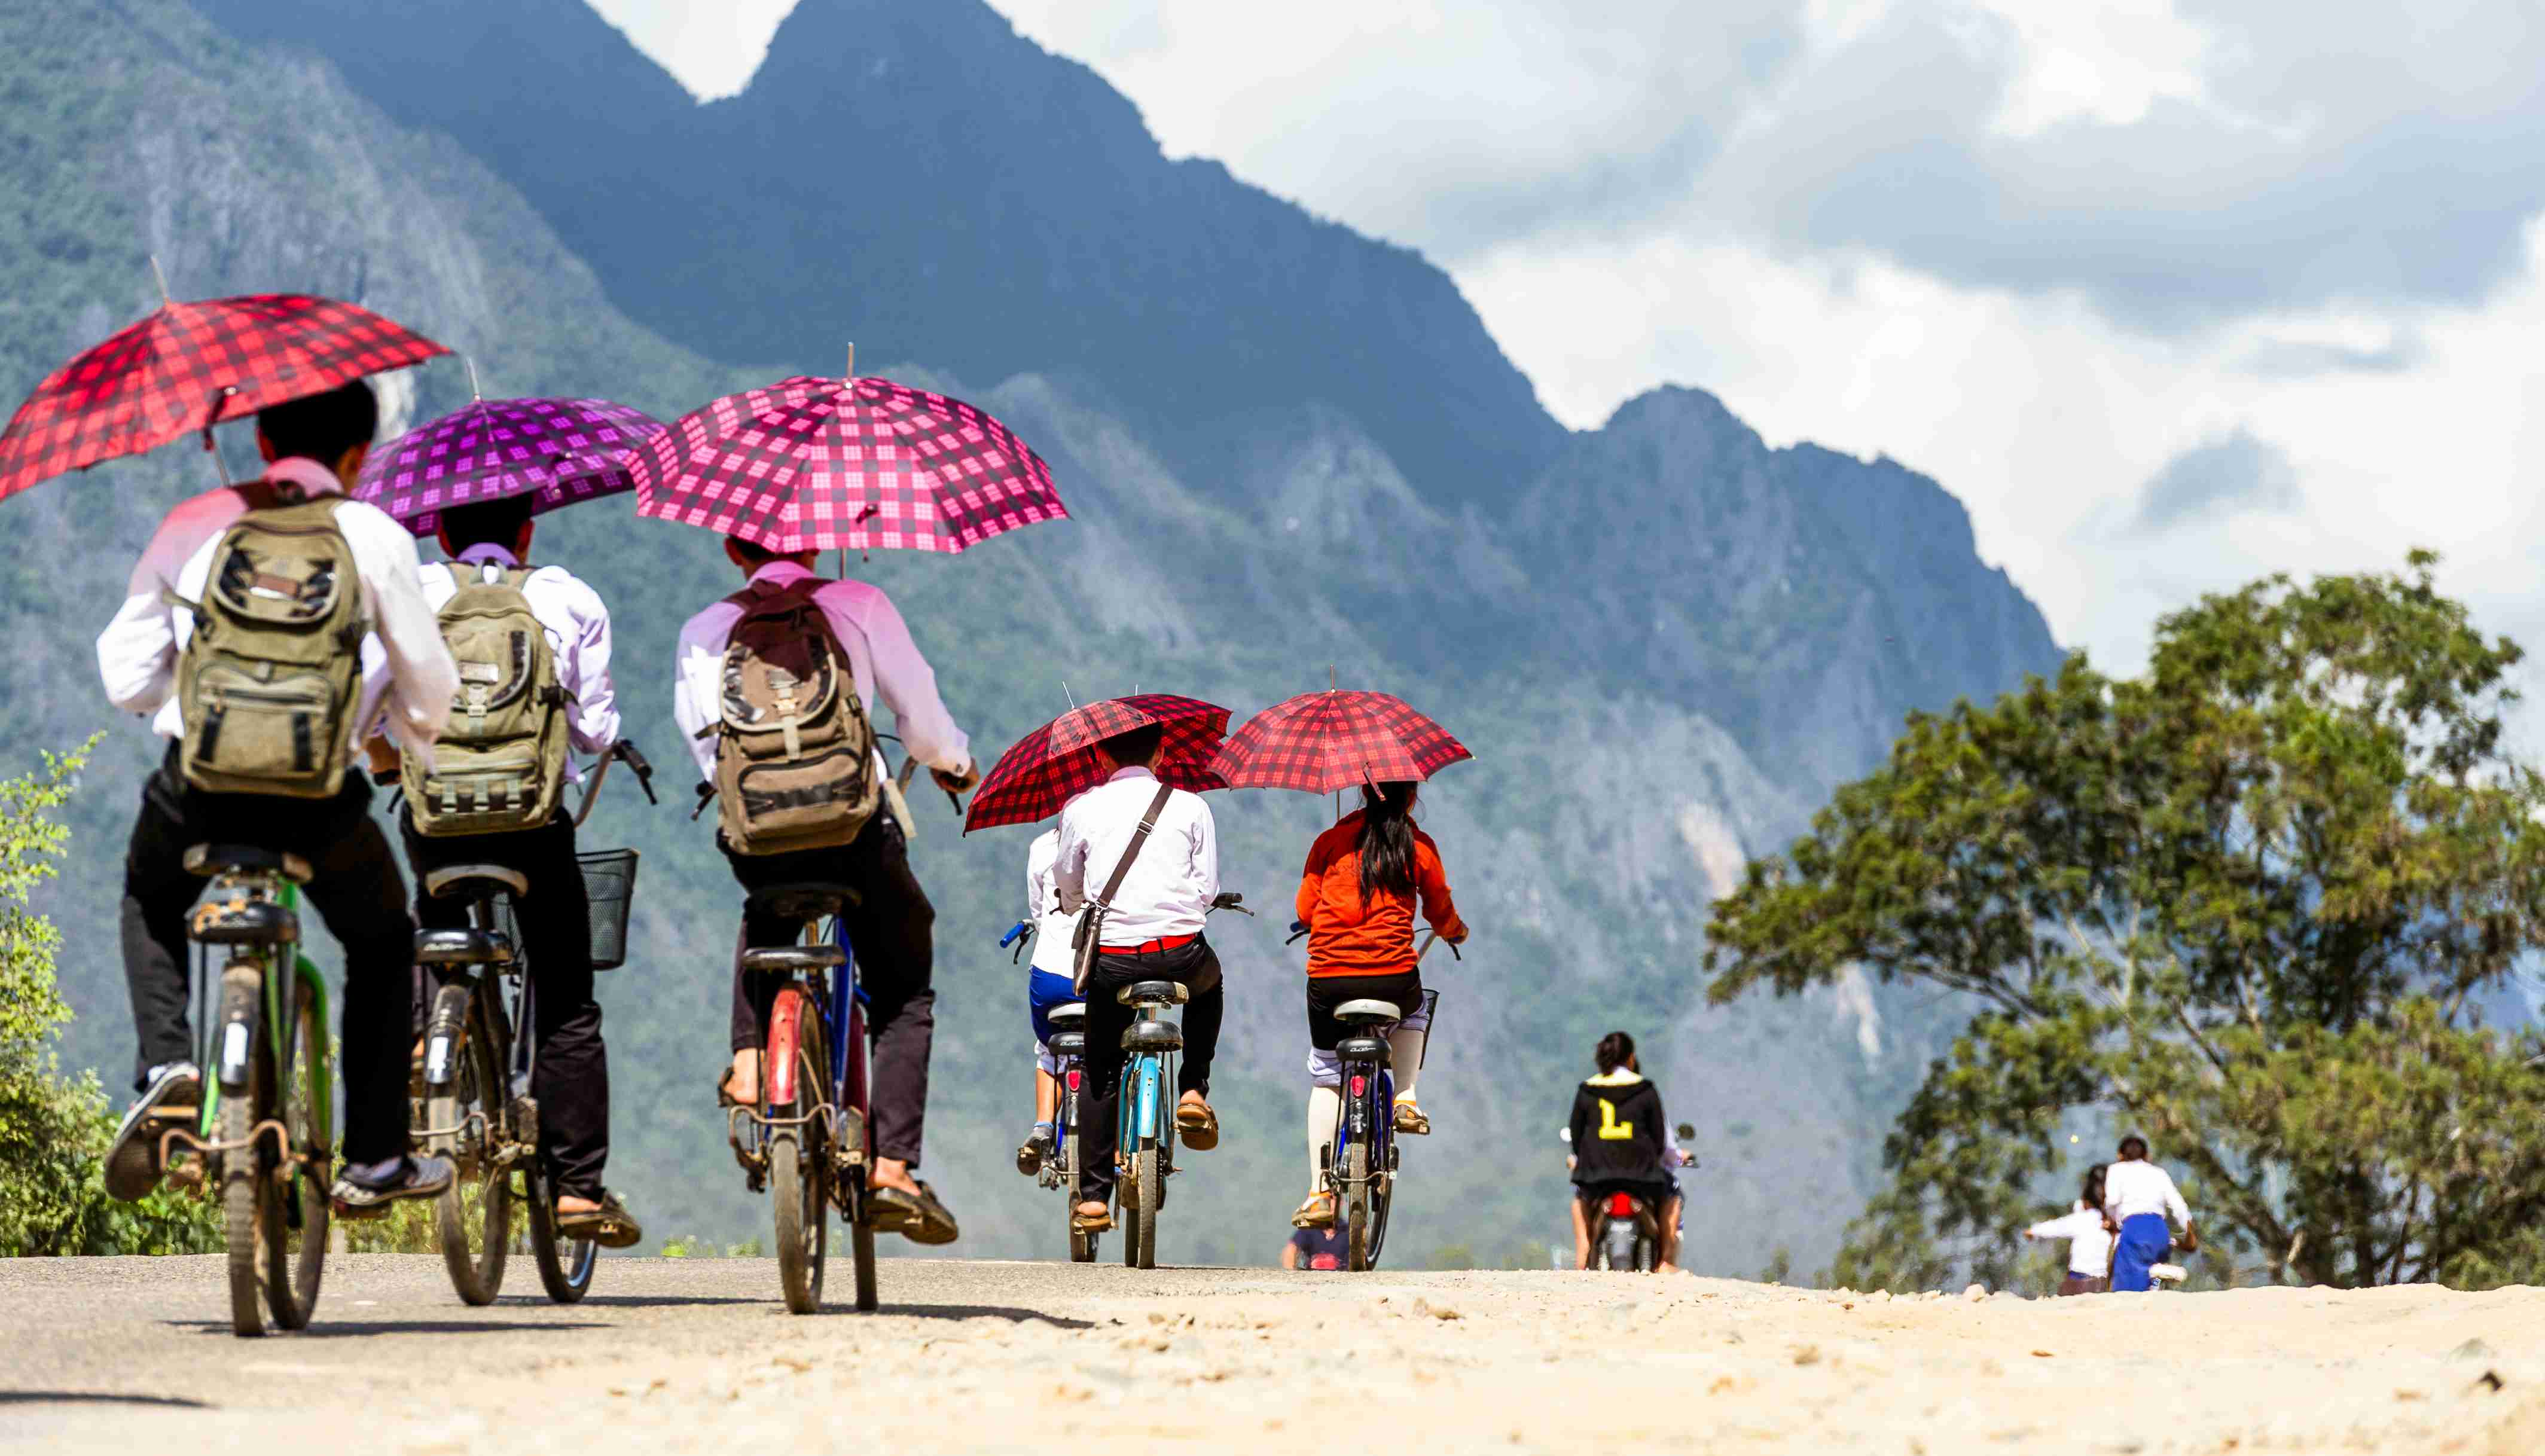 Vang Vieng. Laos. 15/12/2017. Children leaving school by bicycle